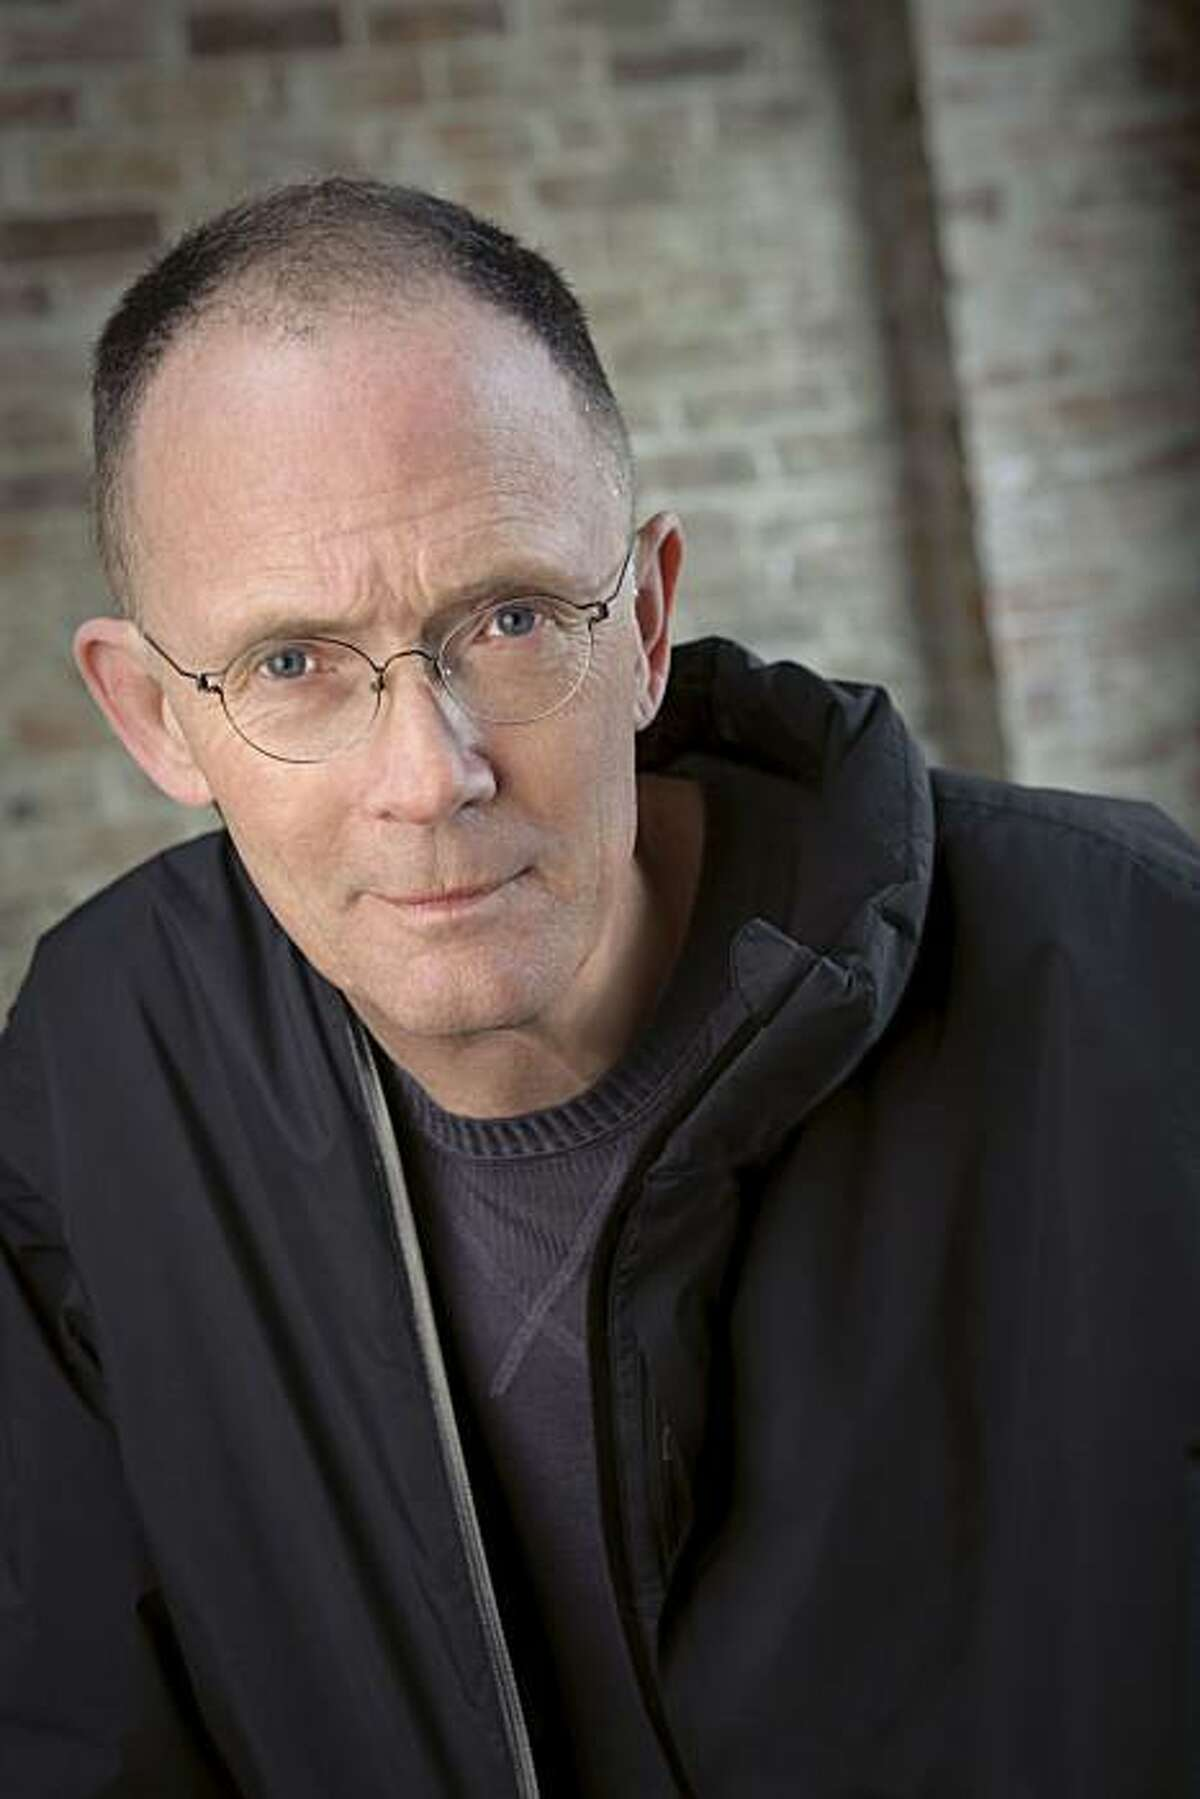 william gibson, famous cyberpunk author, new book is